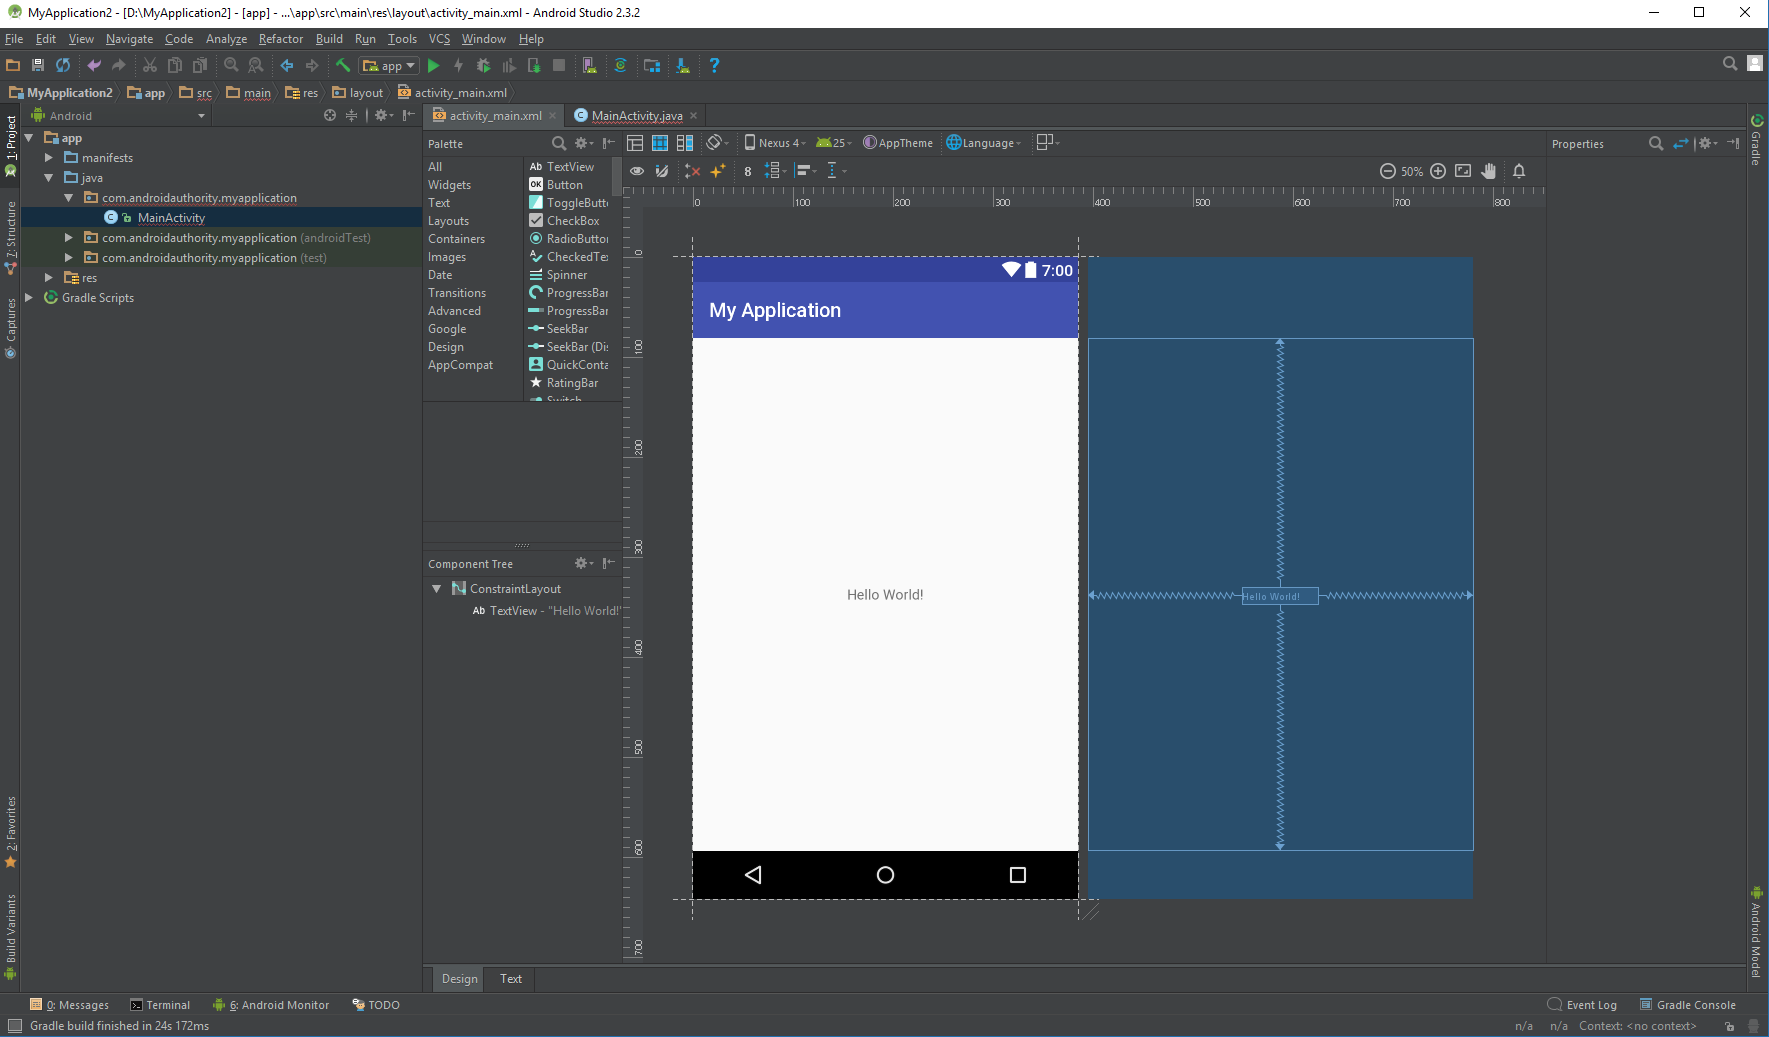 Android Studio Hello World  - s5ZCoAUeSjhzIkFFSoBa - Installing Android Studio and Starting Your First App Project